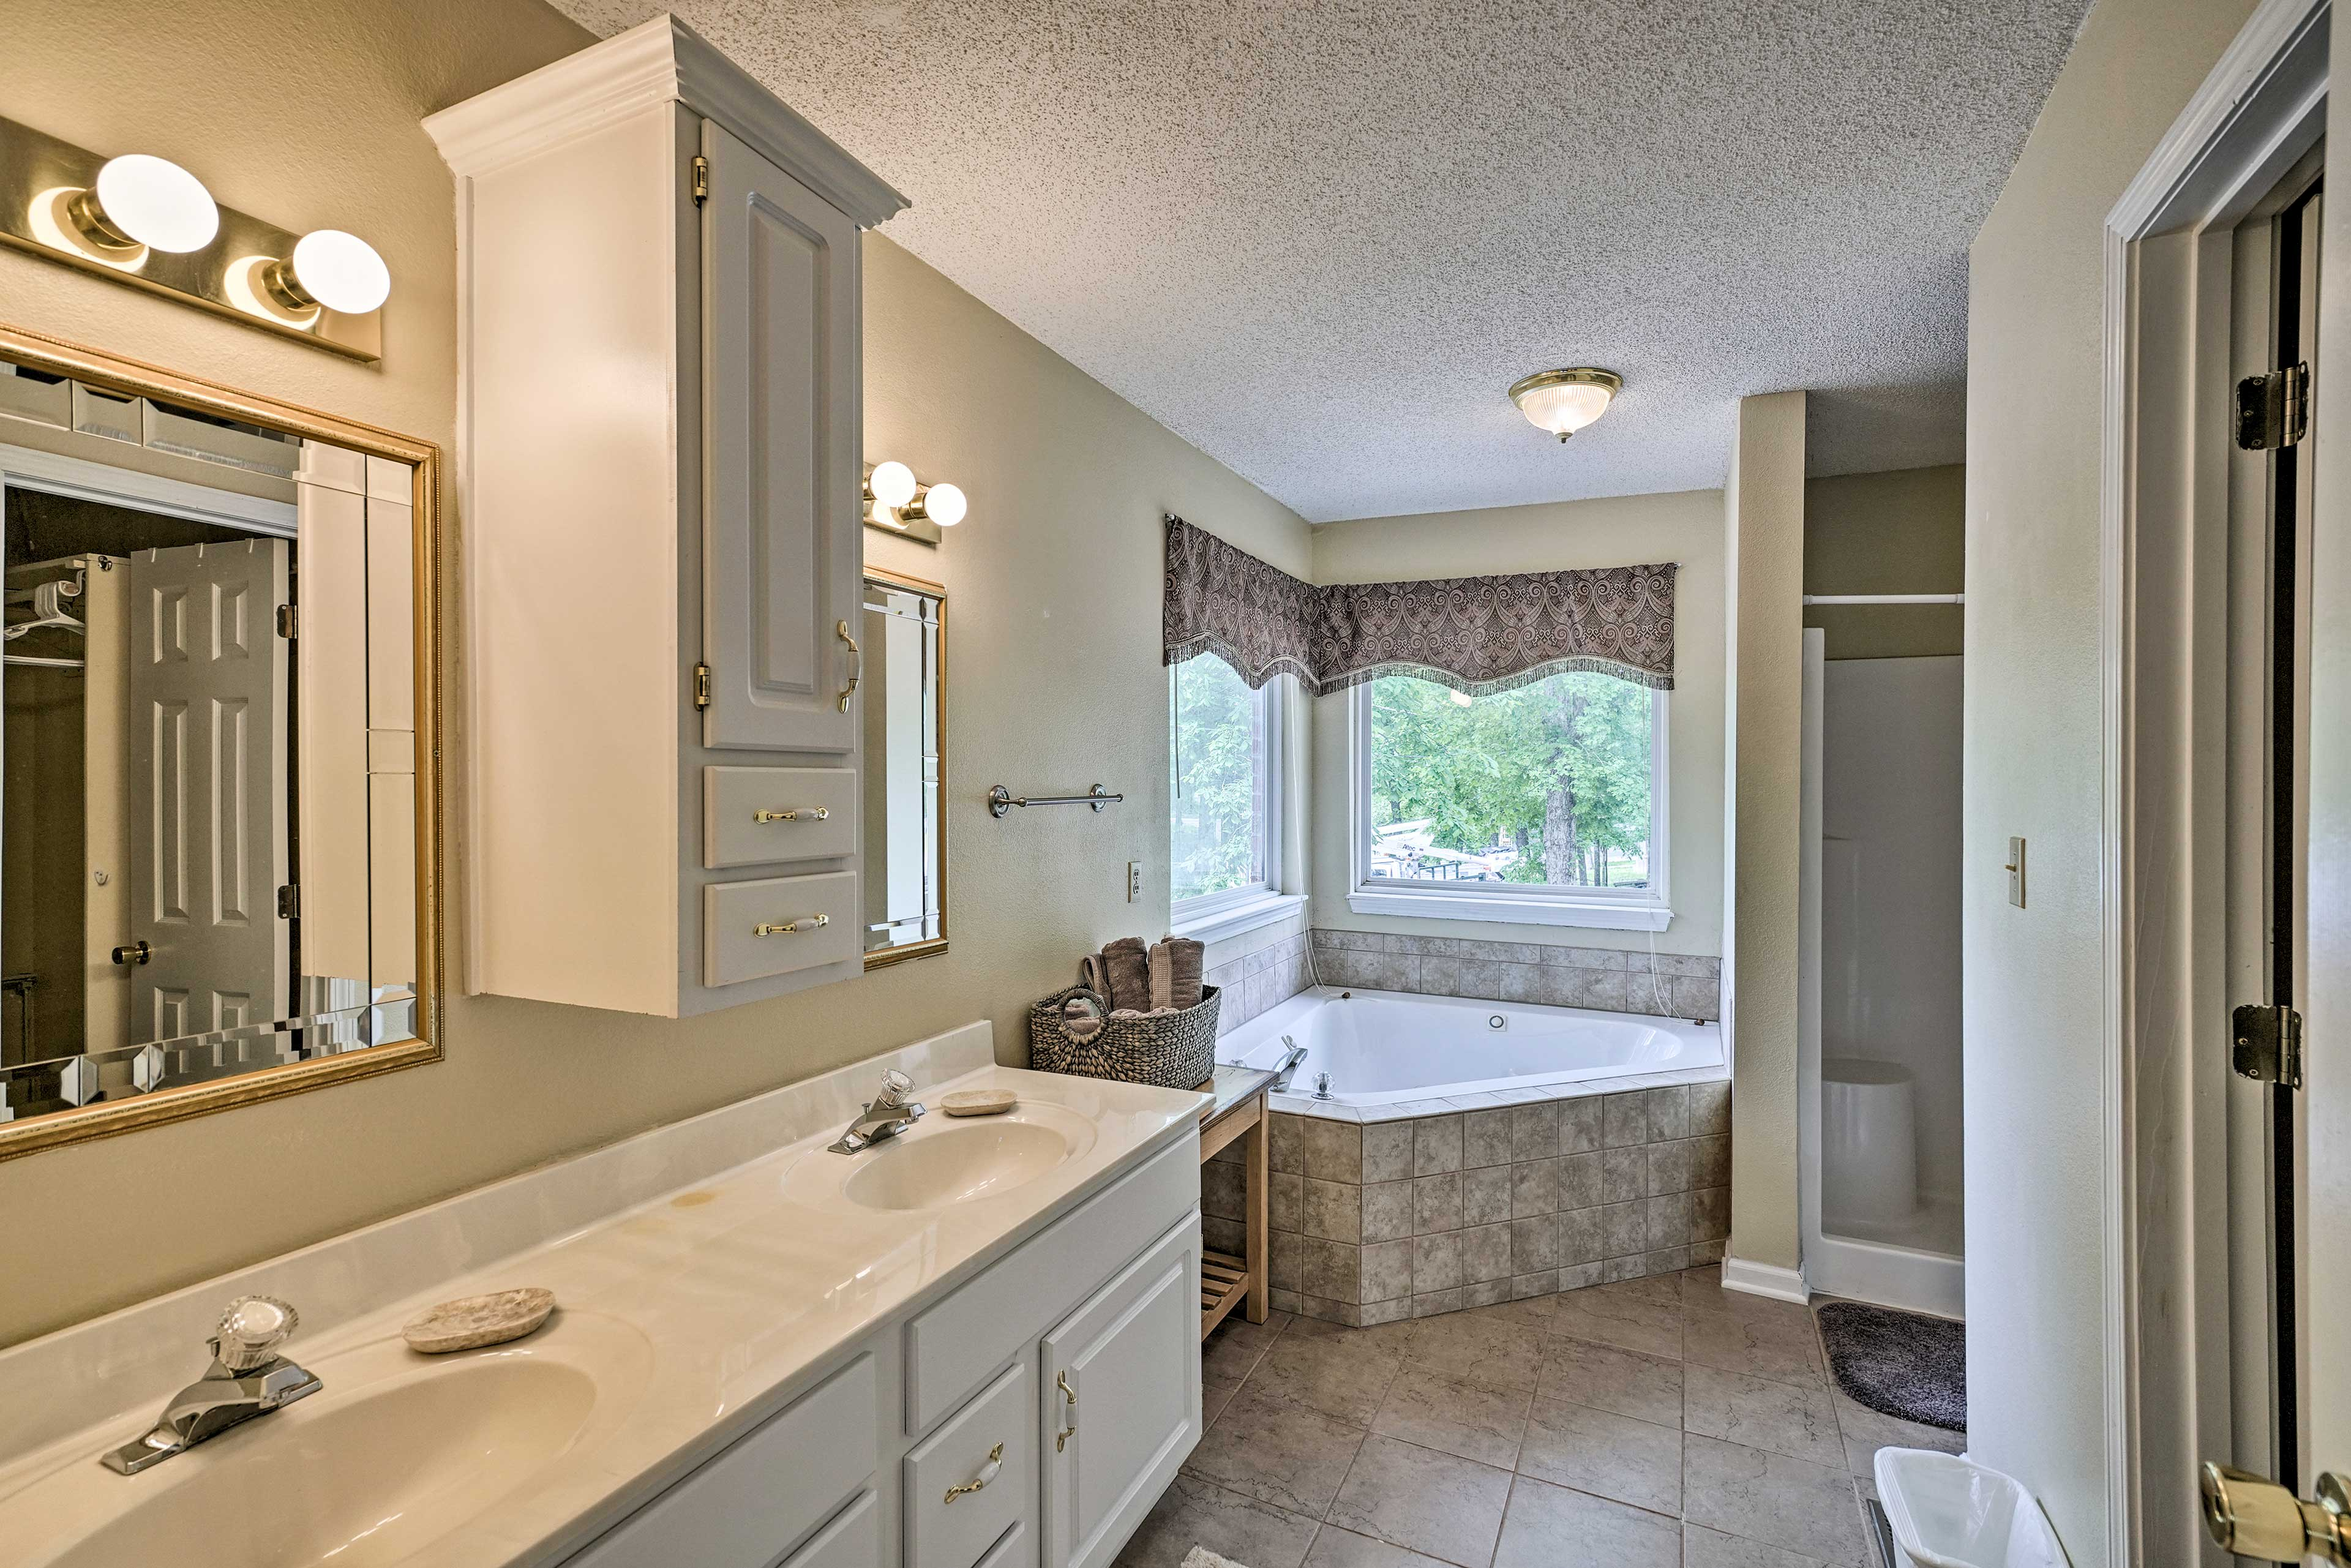 Oh snap! There's also a deep soaking tub and separate walk-in shower.